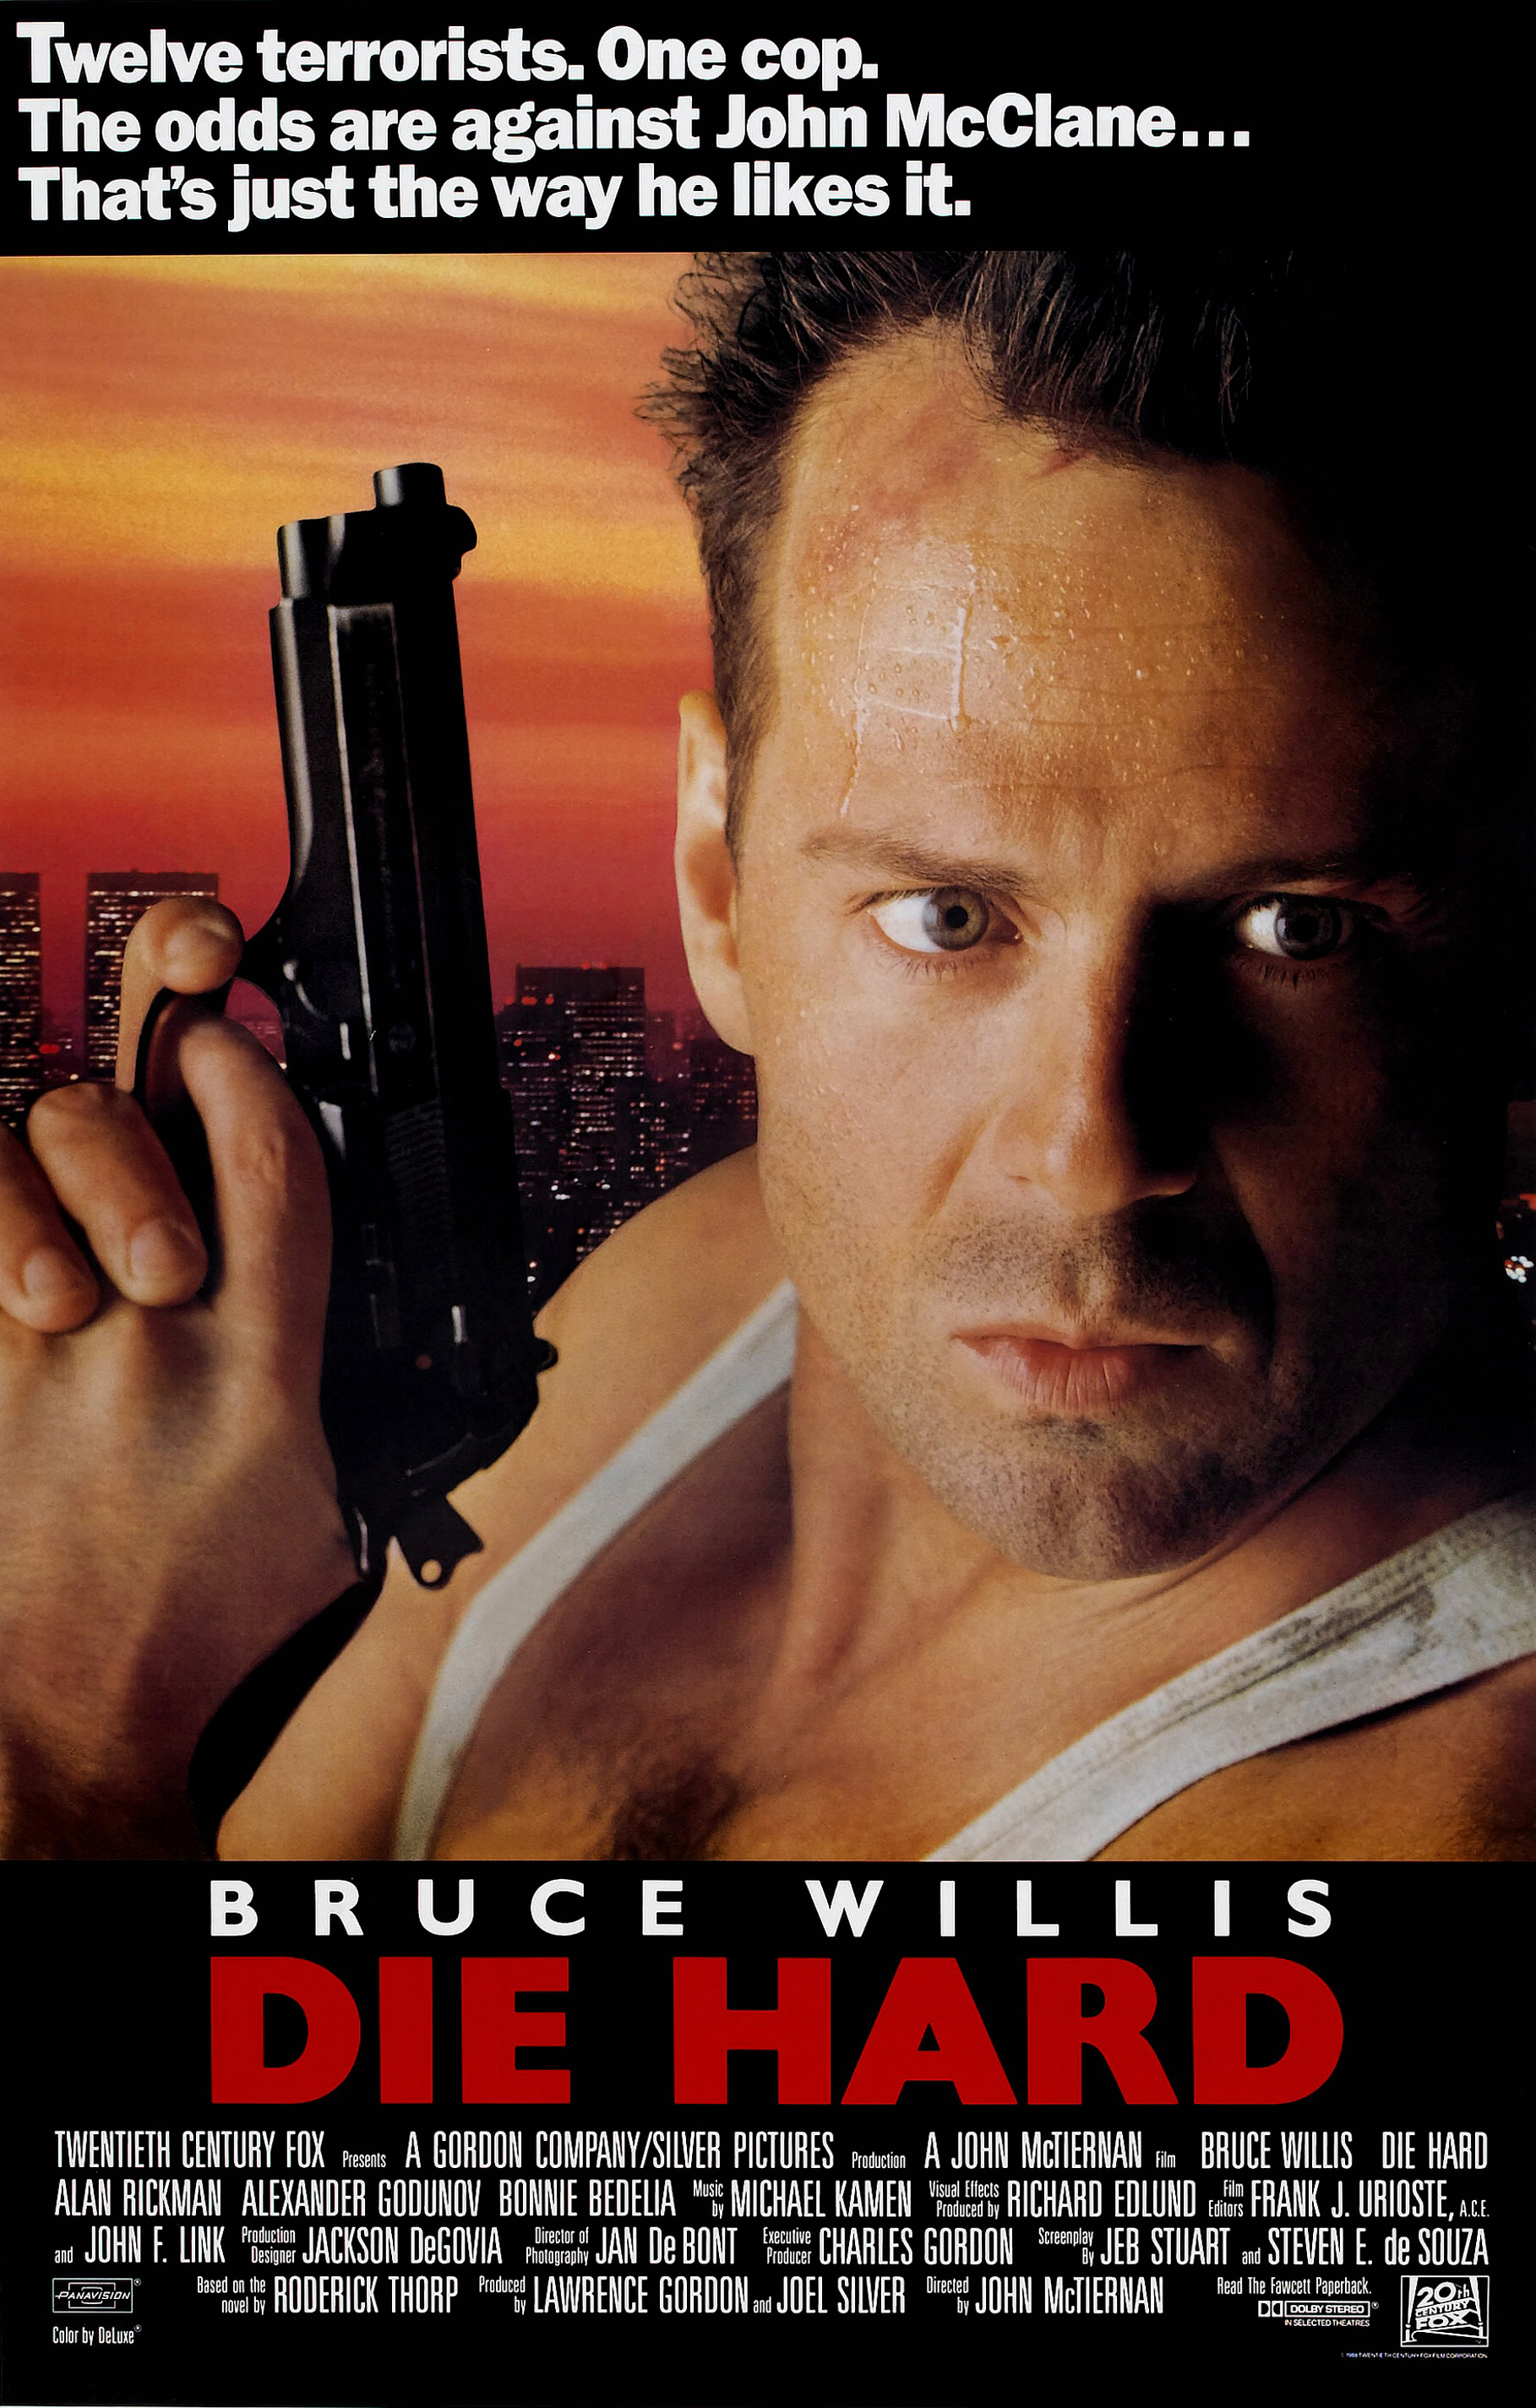 bruce-willis-die-hard-one-sheet-hd.jpg&f